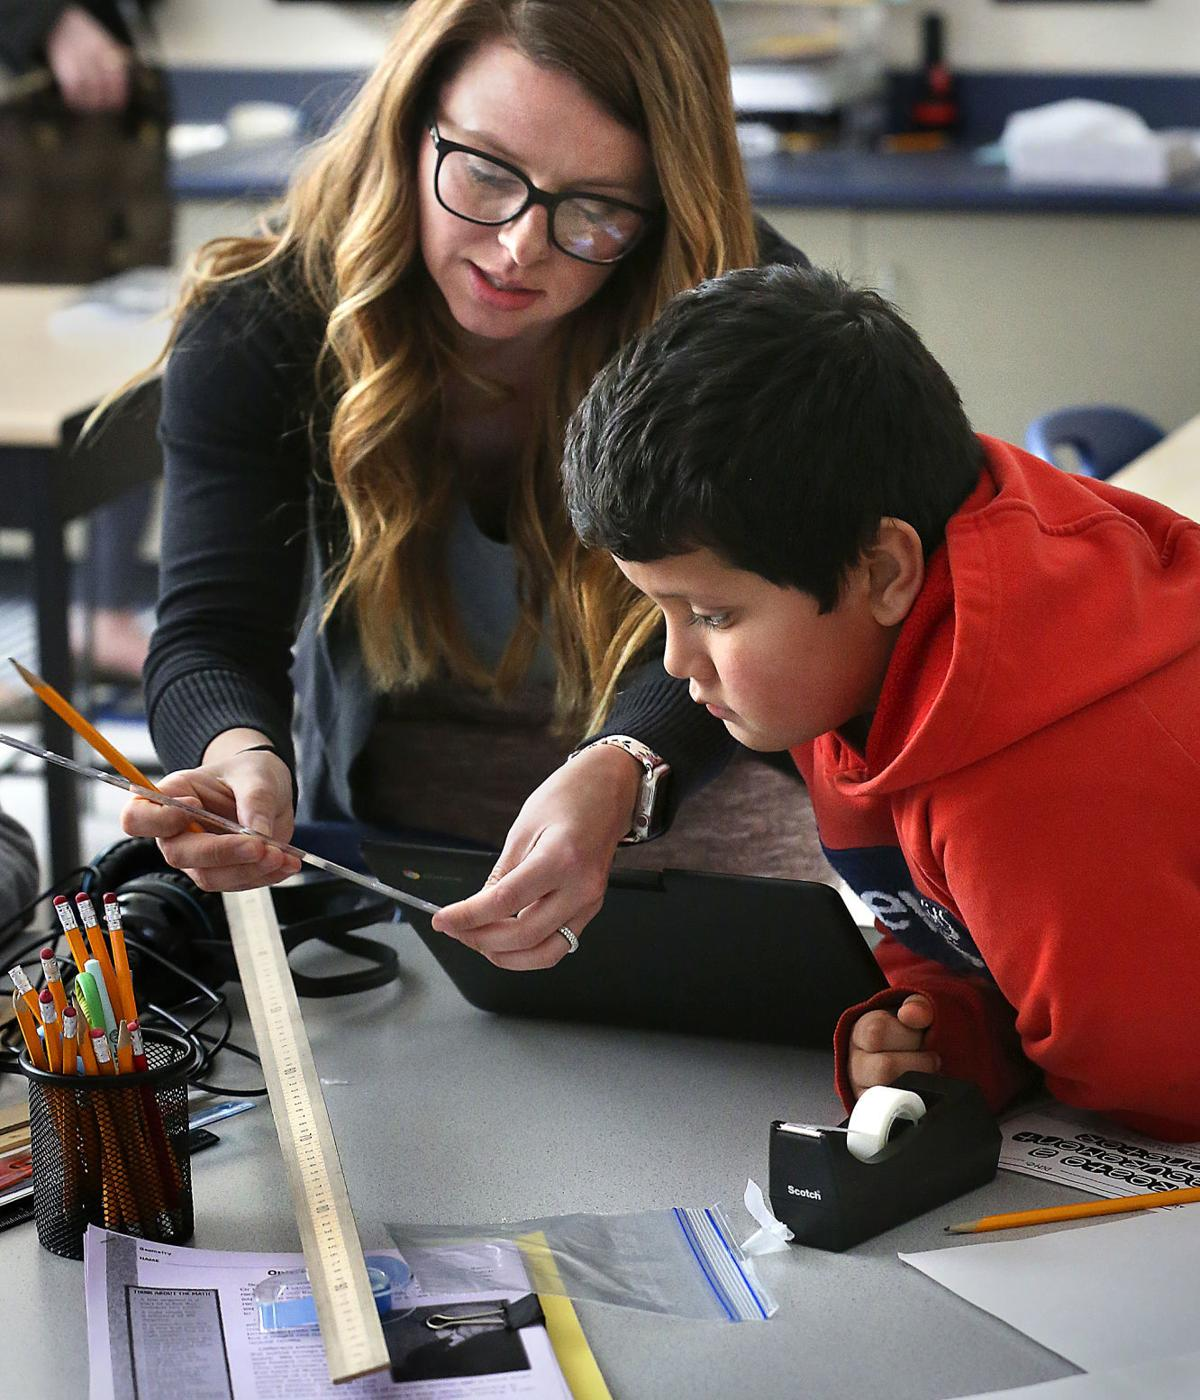 PEDLE gives students a choice in how they learn | Winchester Star